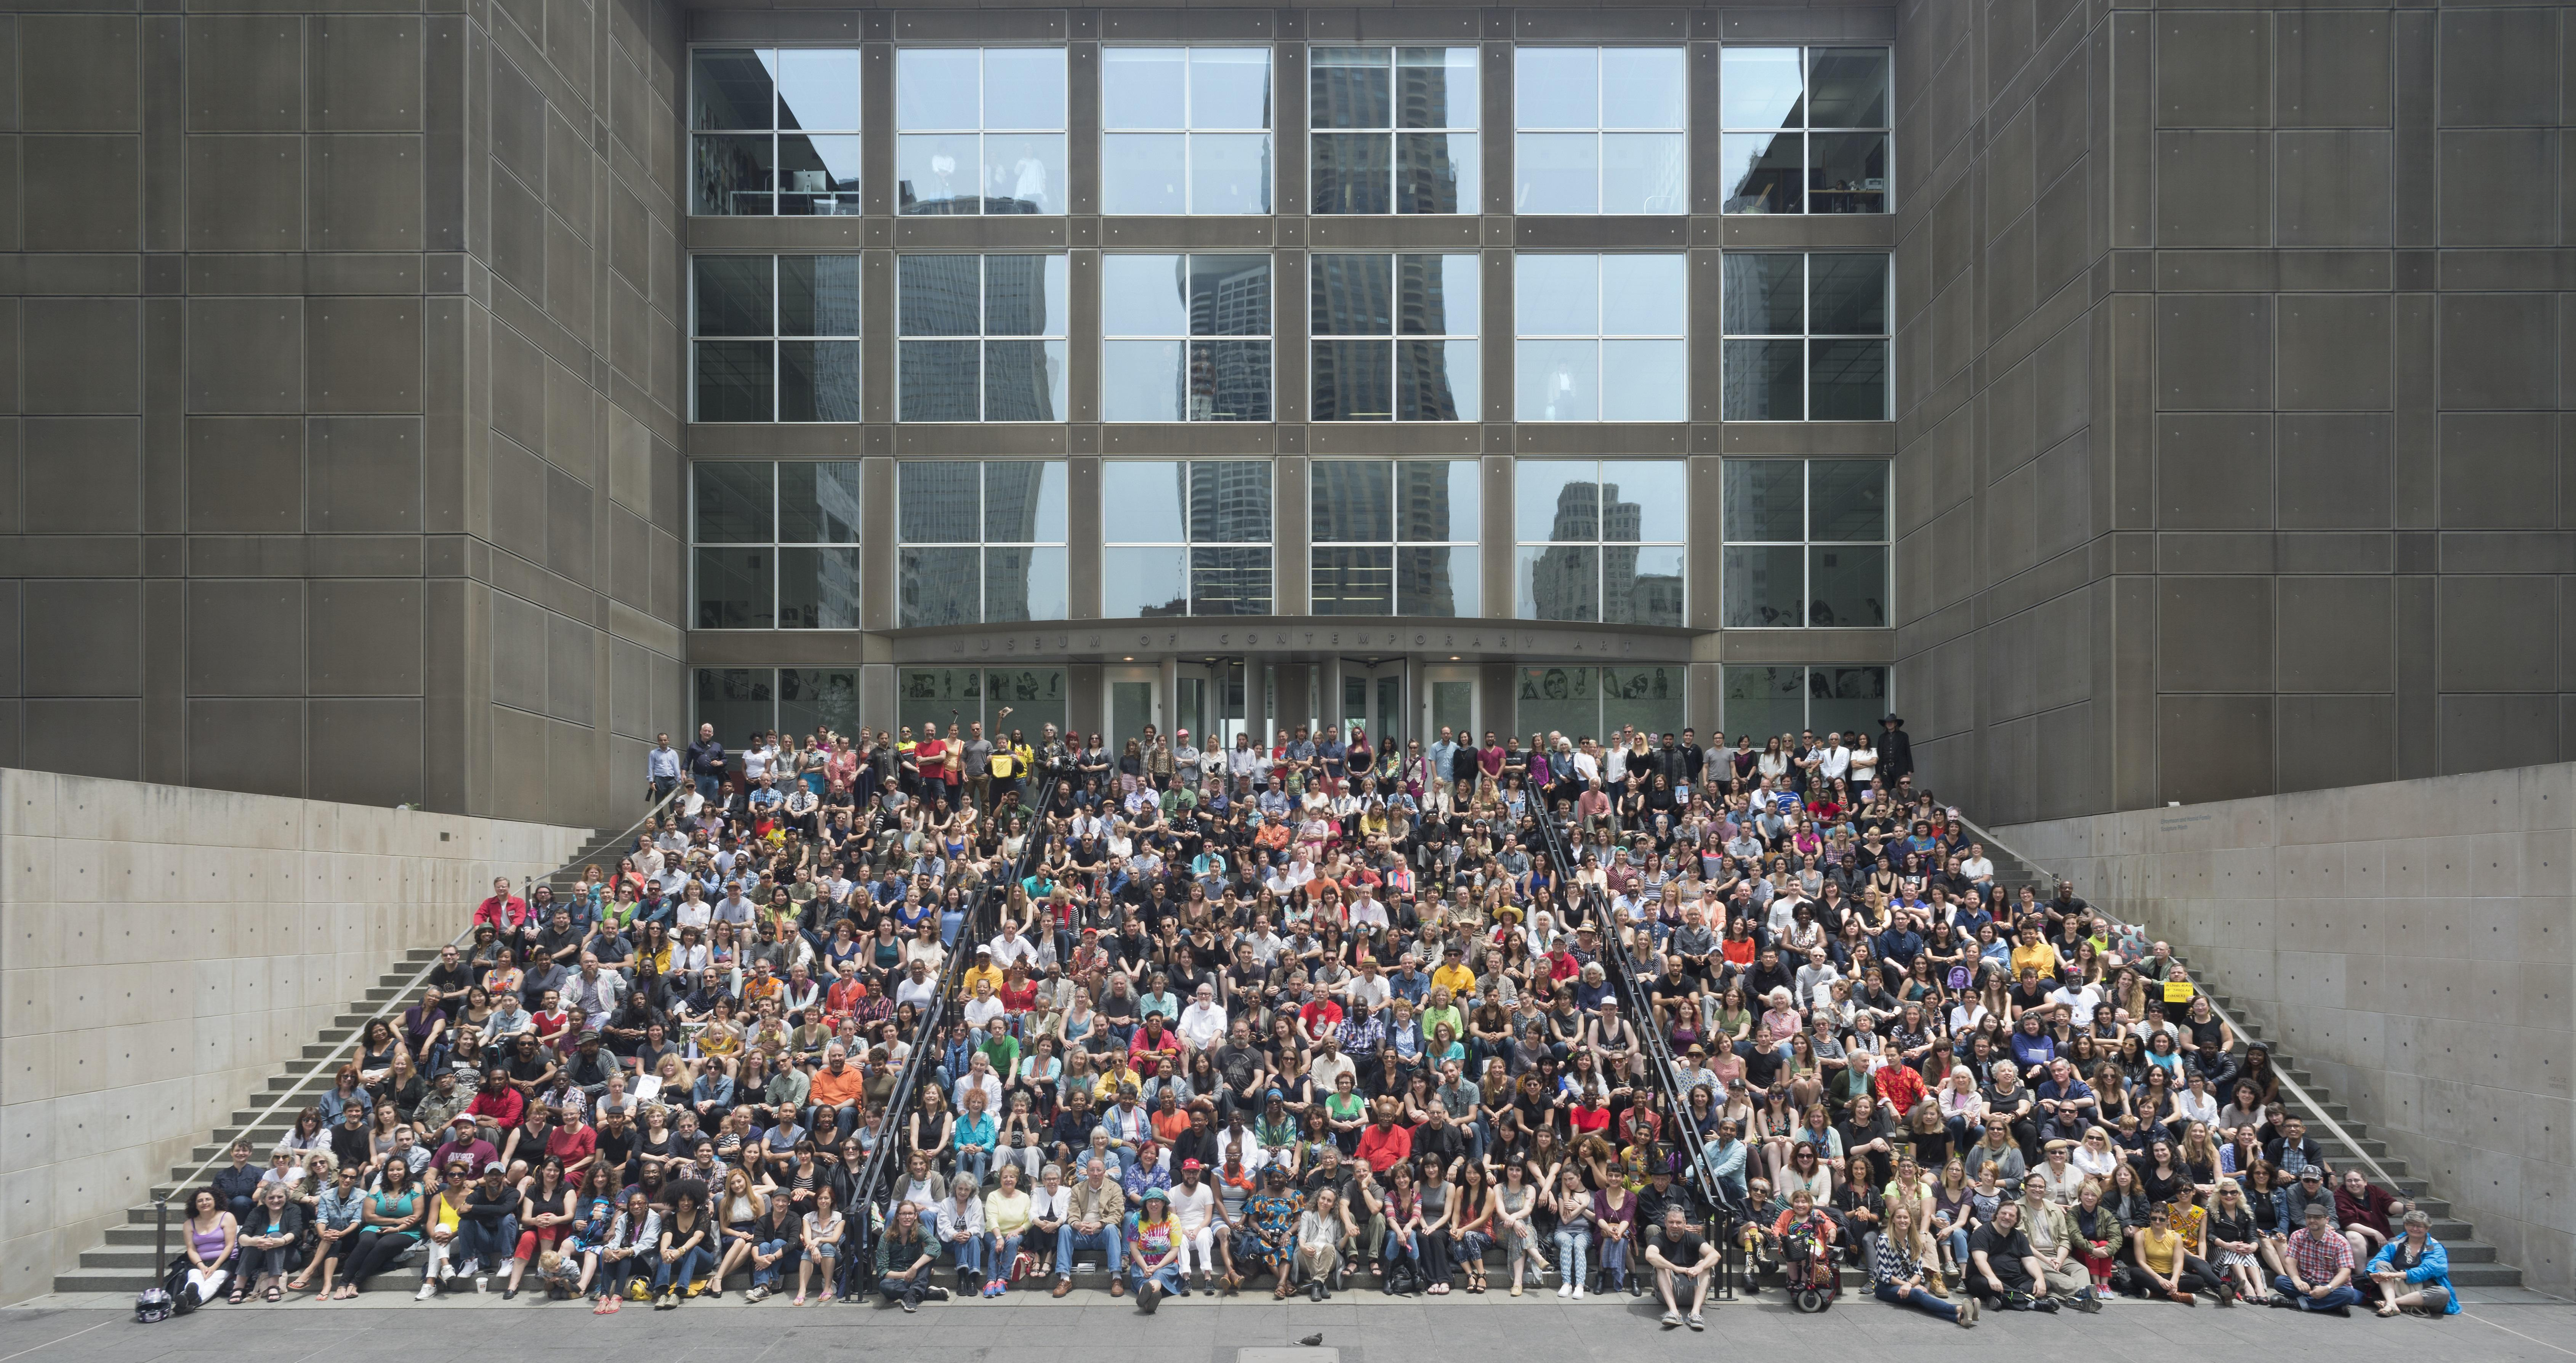 A large group fill the stairs for a photo in front of the entrance of MCA Chicago.